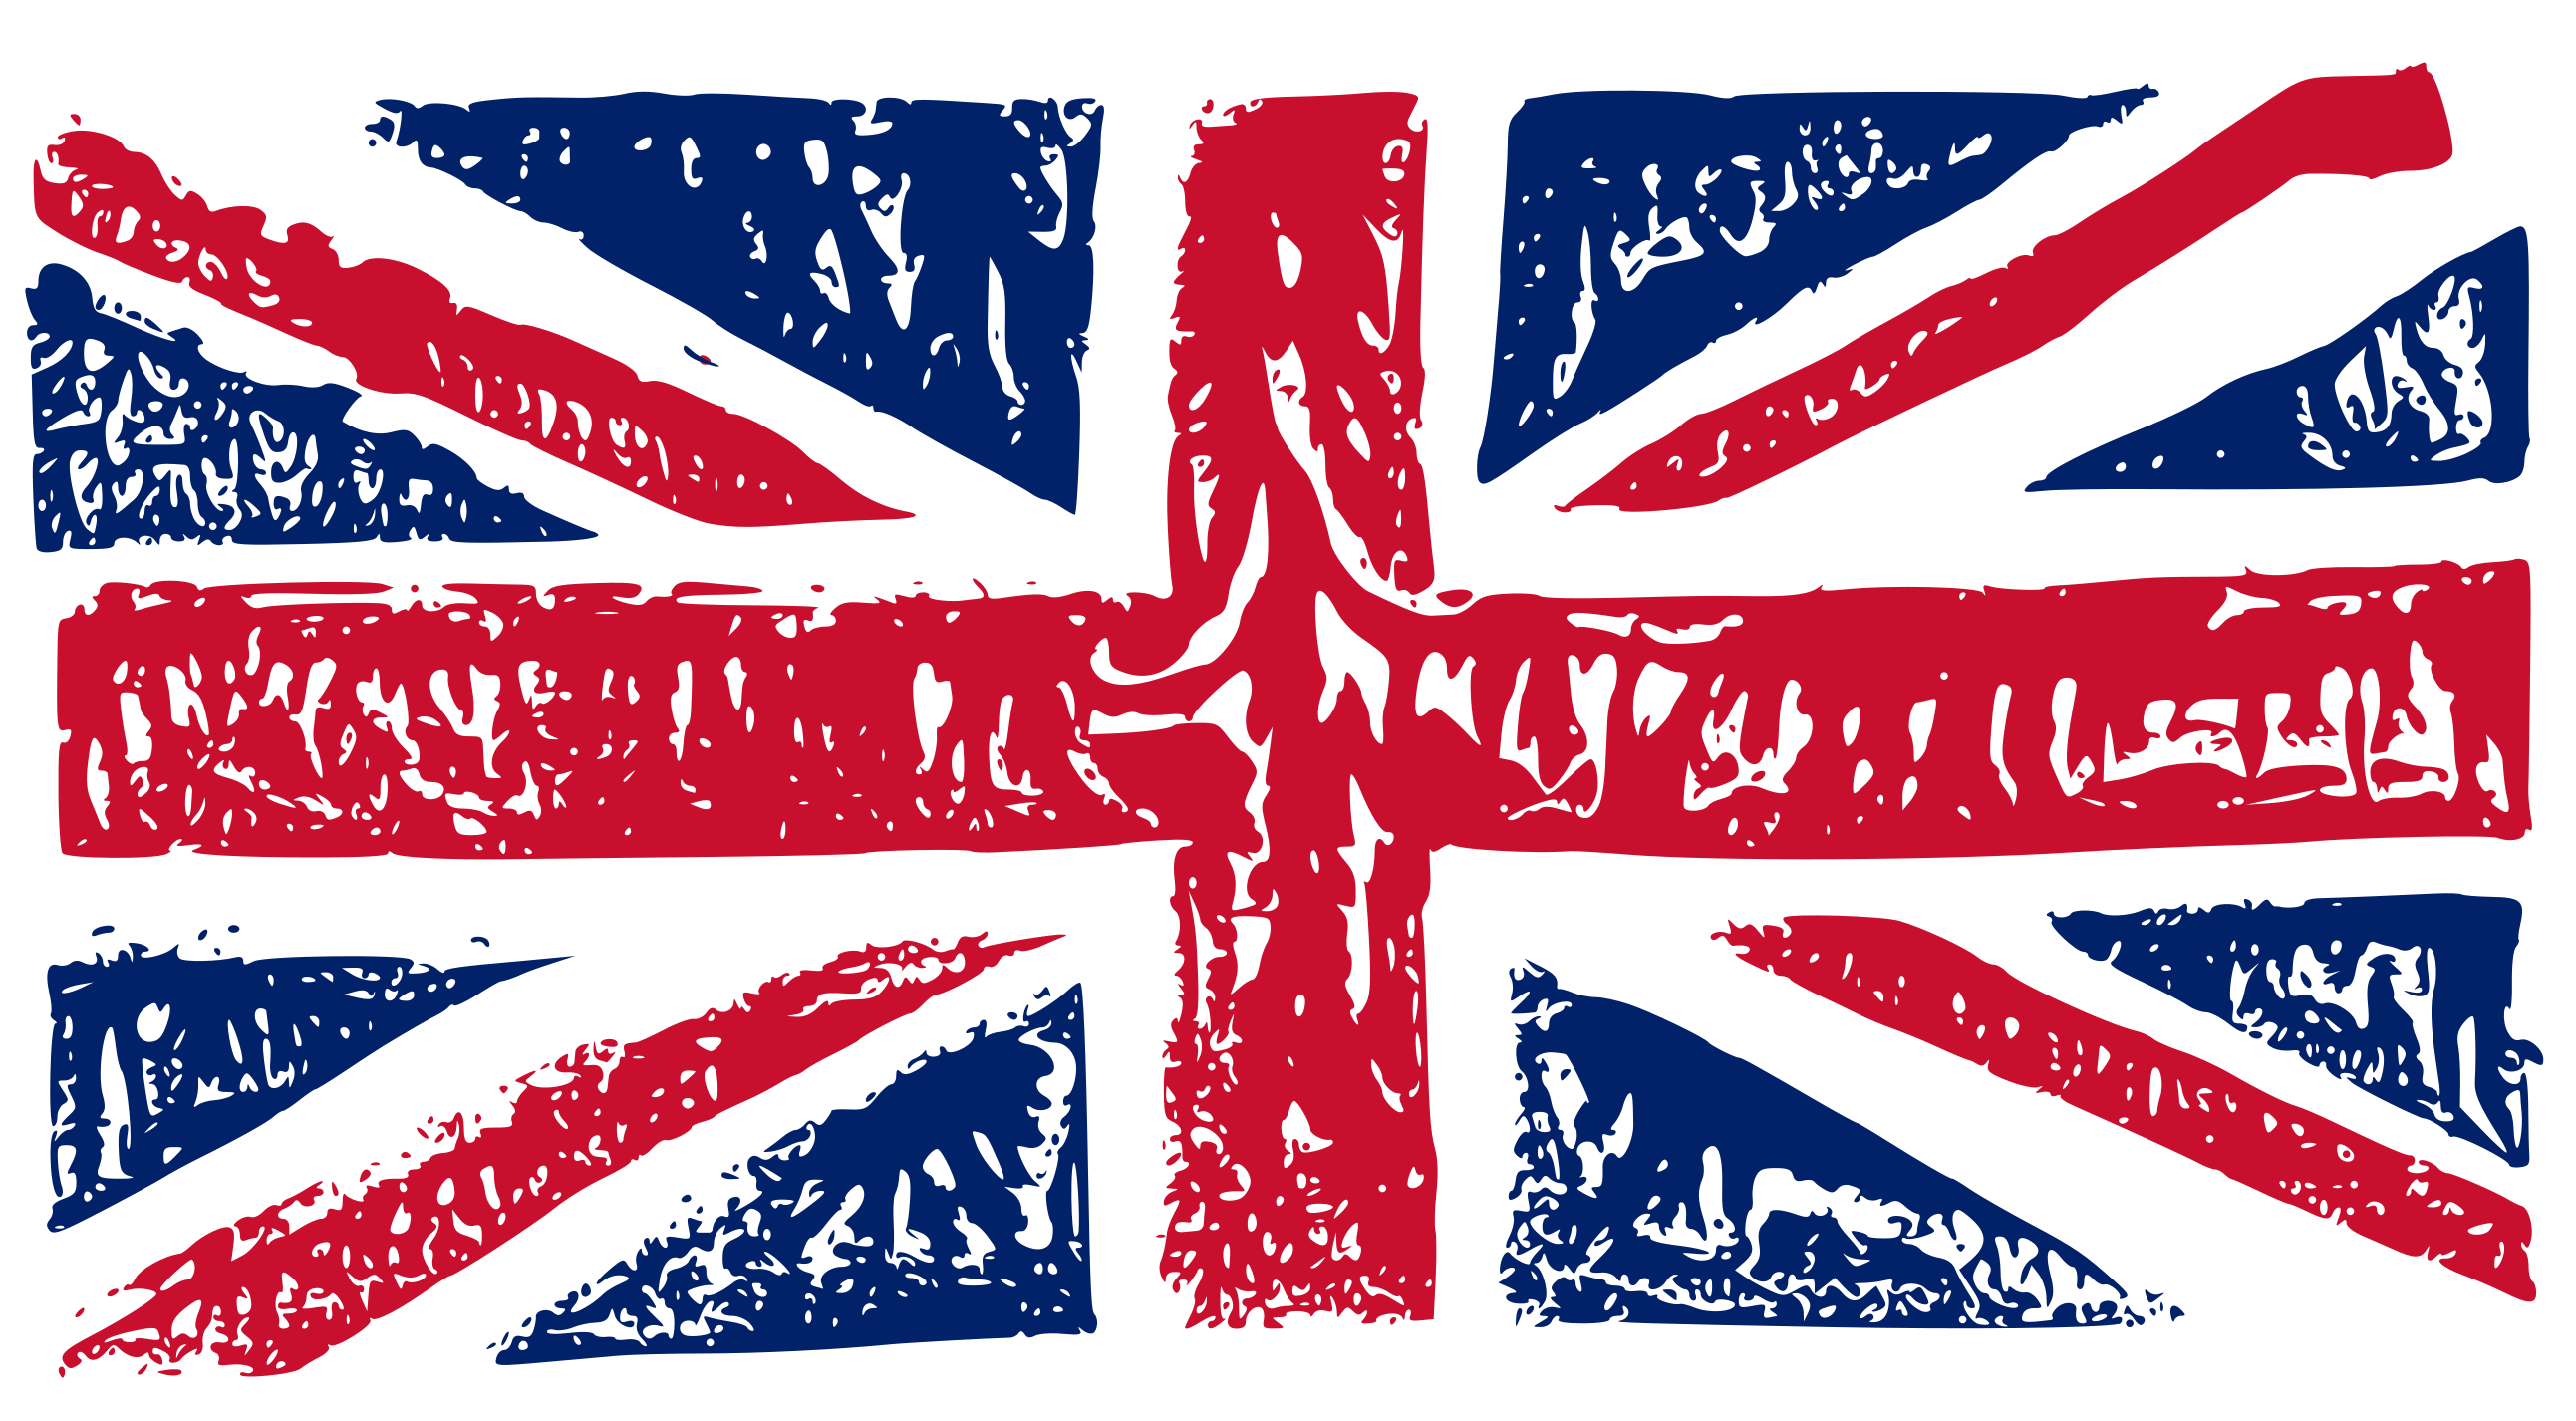 grunge-britain-uk-flag-1.png